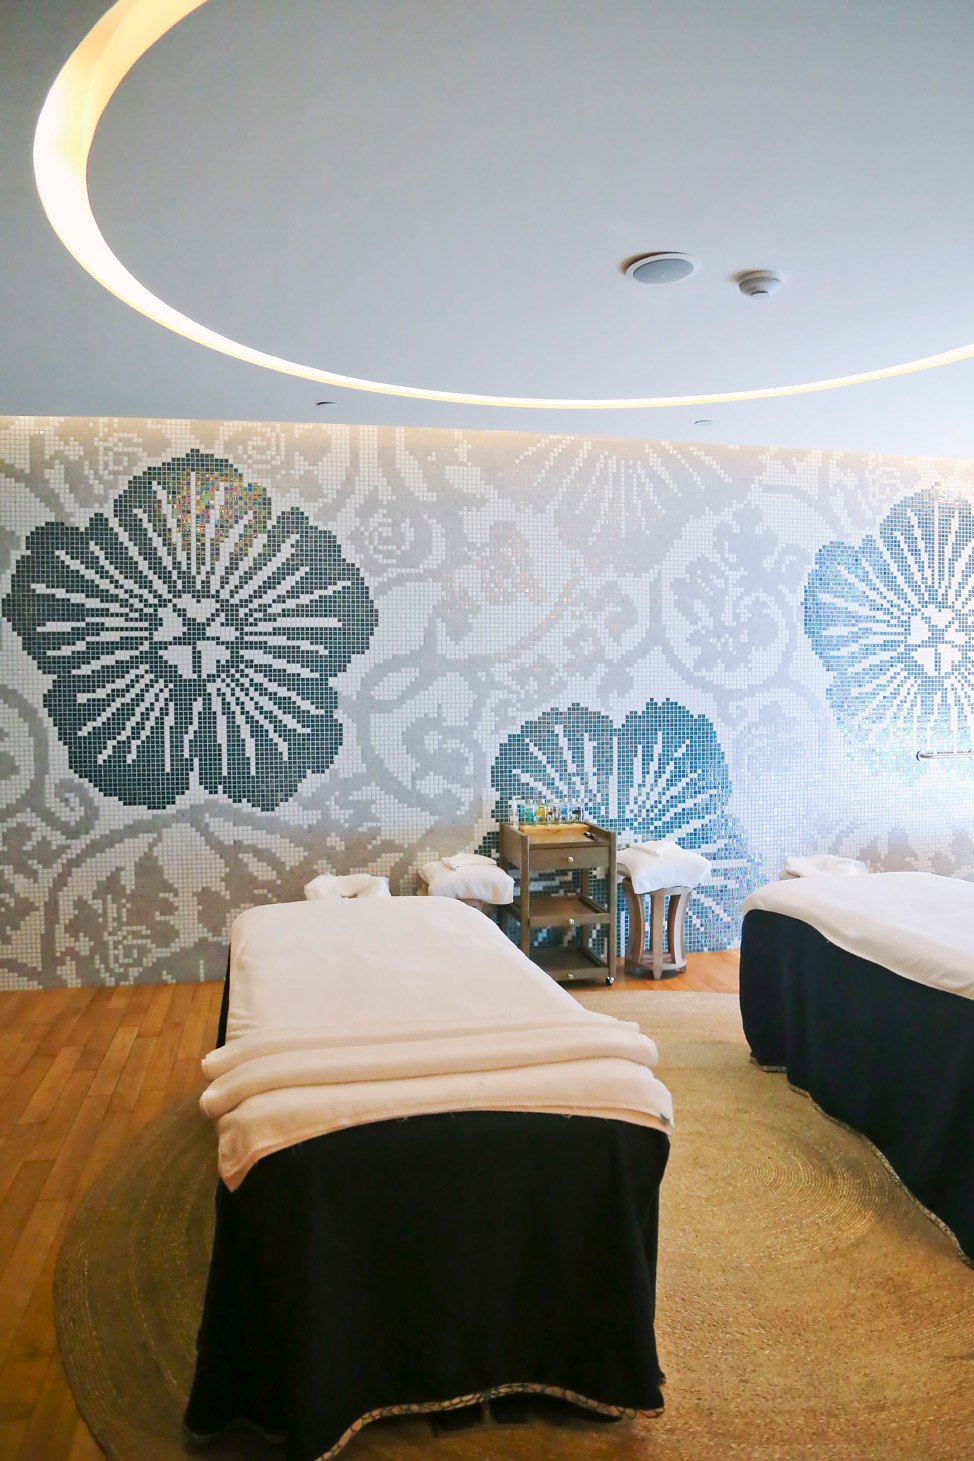 Breeze Spa Hua Hin Amari